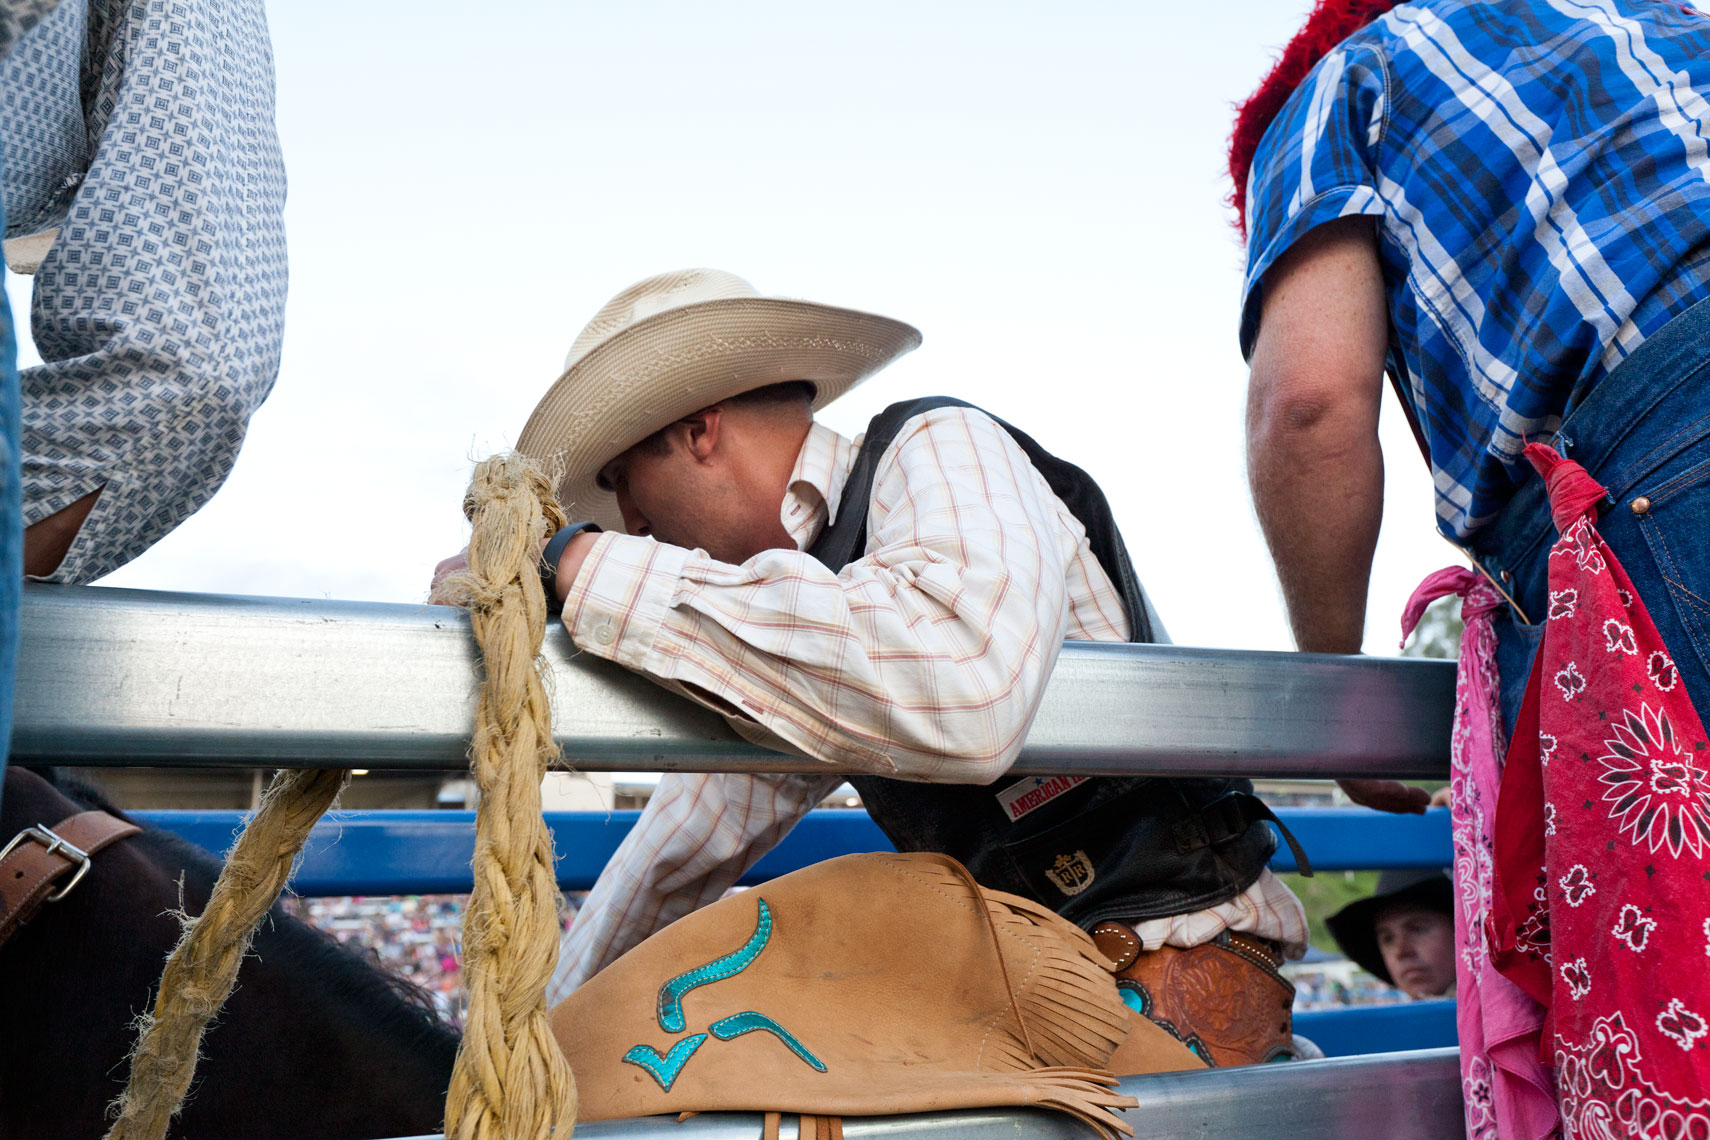 007_MacleanRodeo_MG_4431.jpg